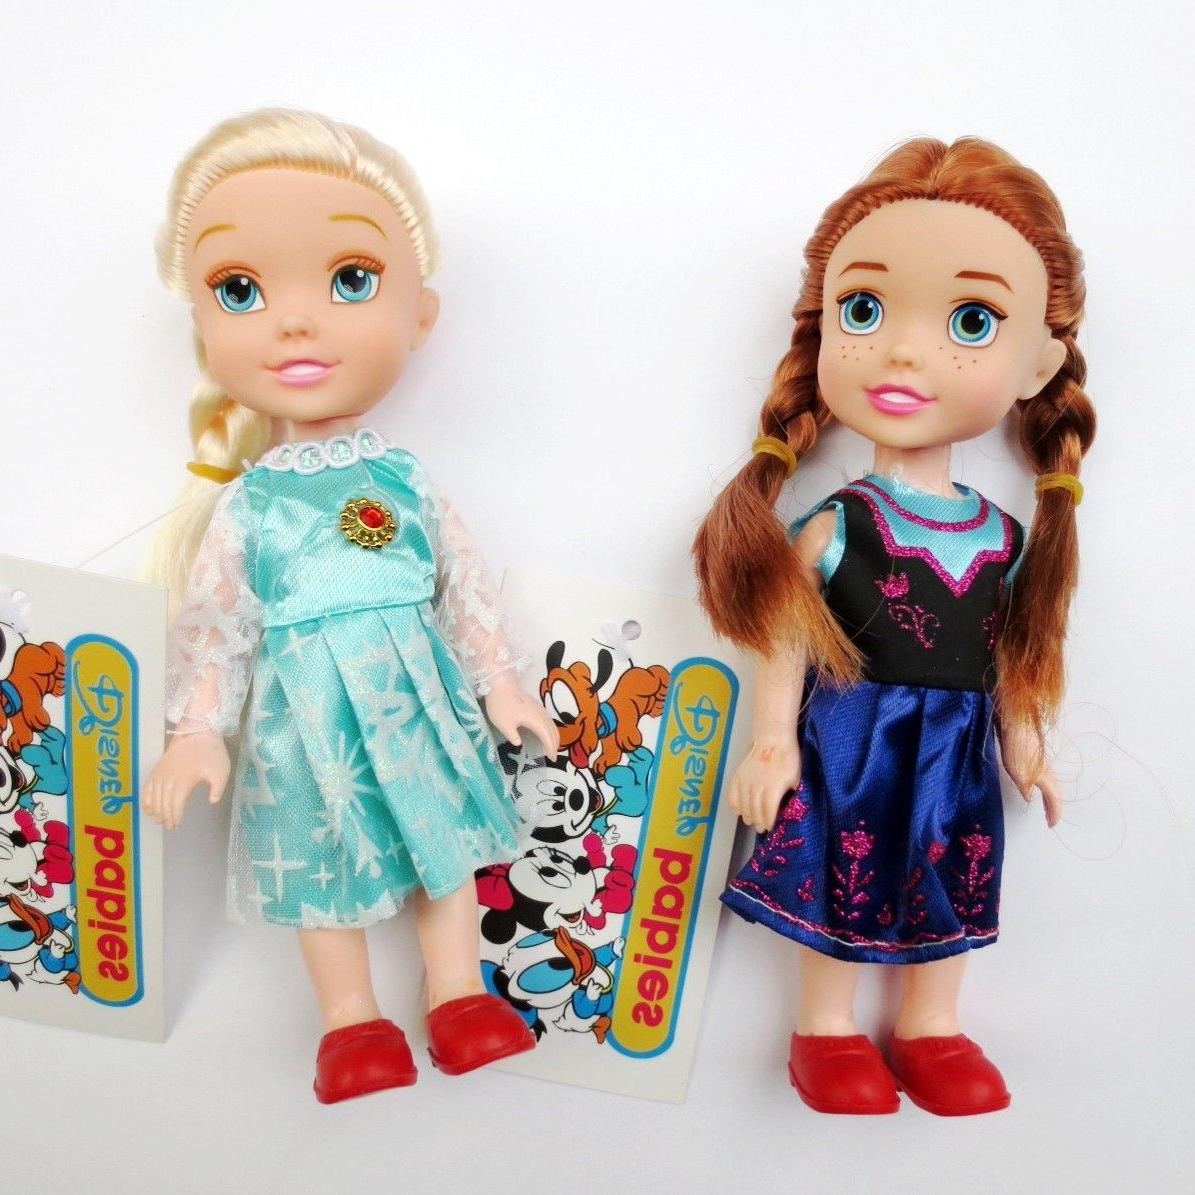 16 cm Toddlers Princess Anna Elsa Dolls